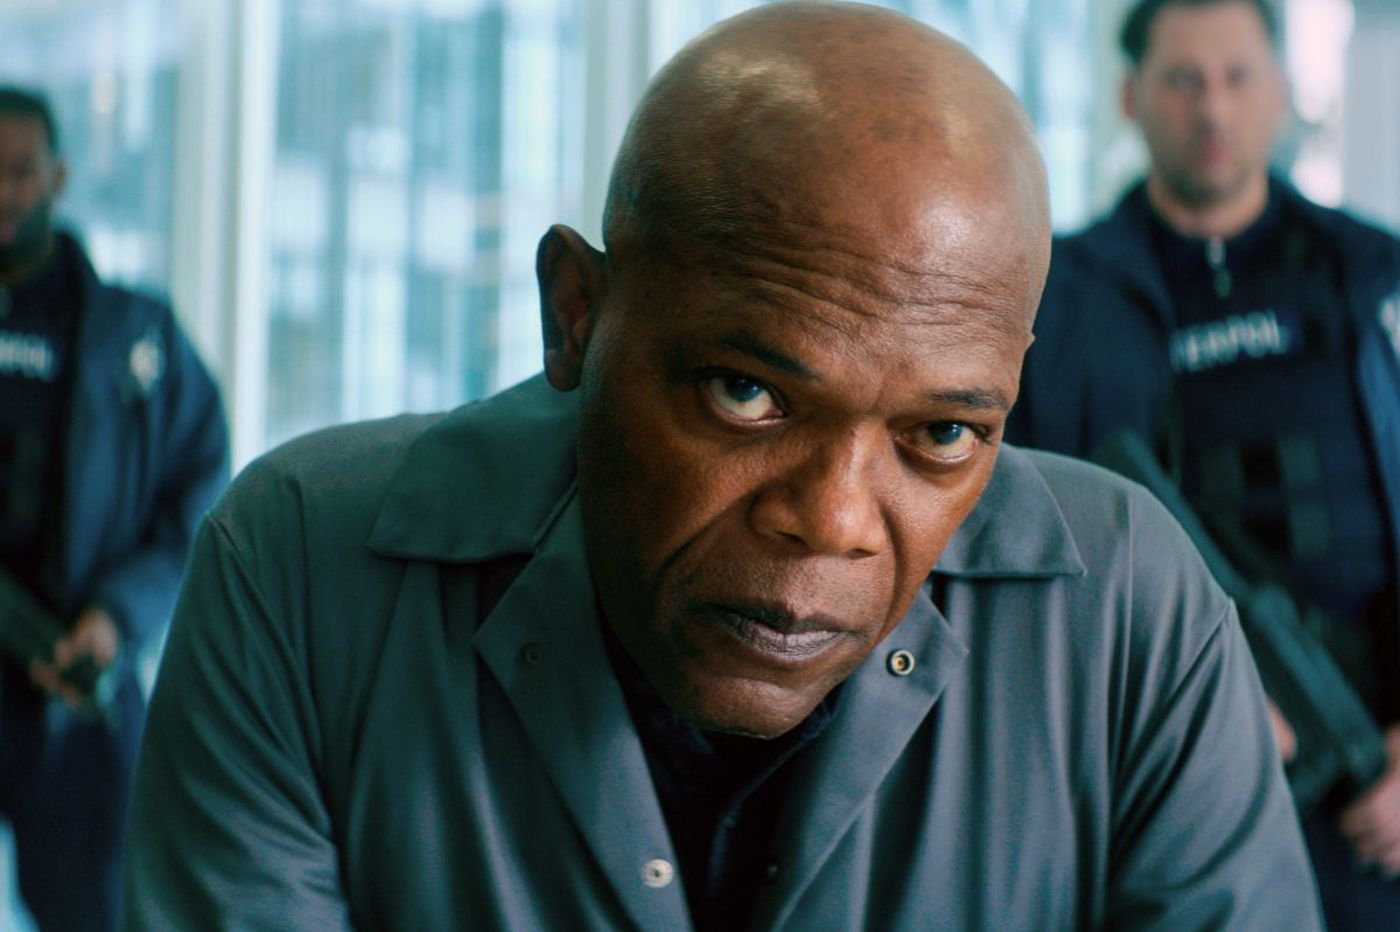 Samuel L. Jackson, other celebs spotted dining out in Philly